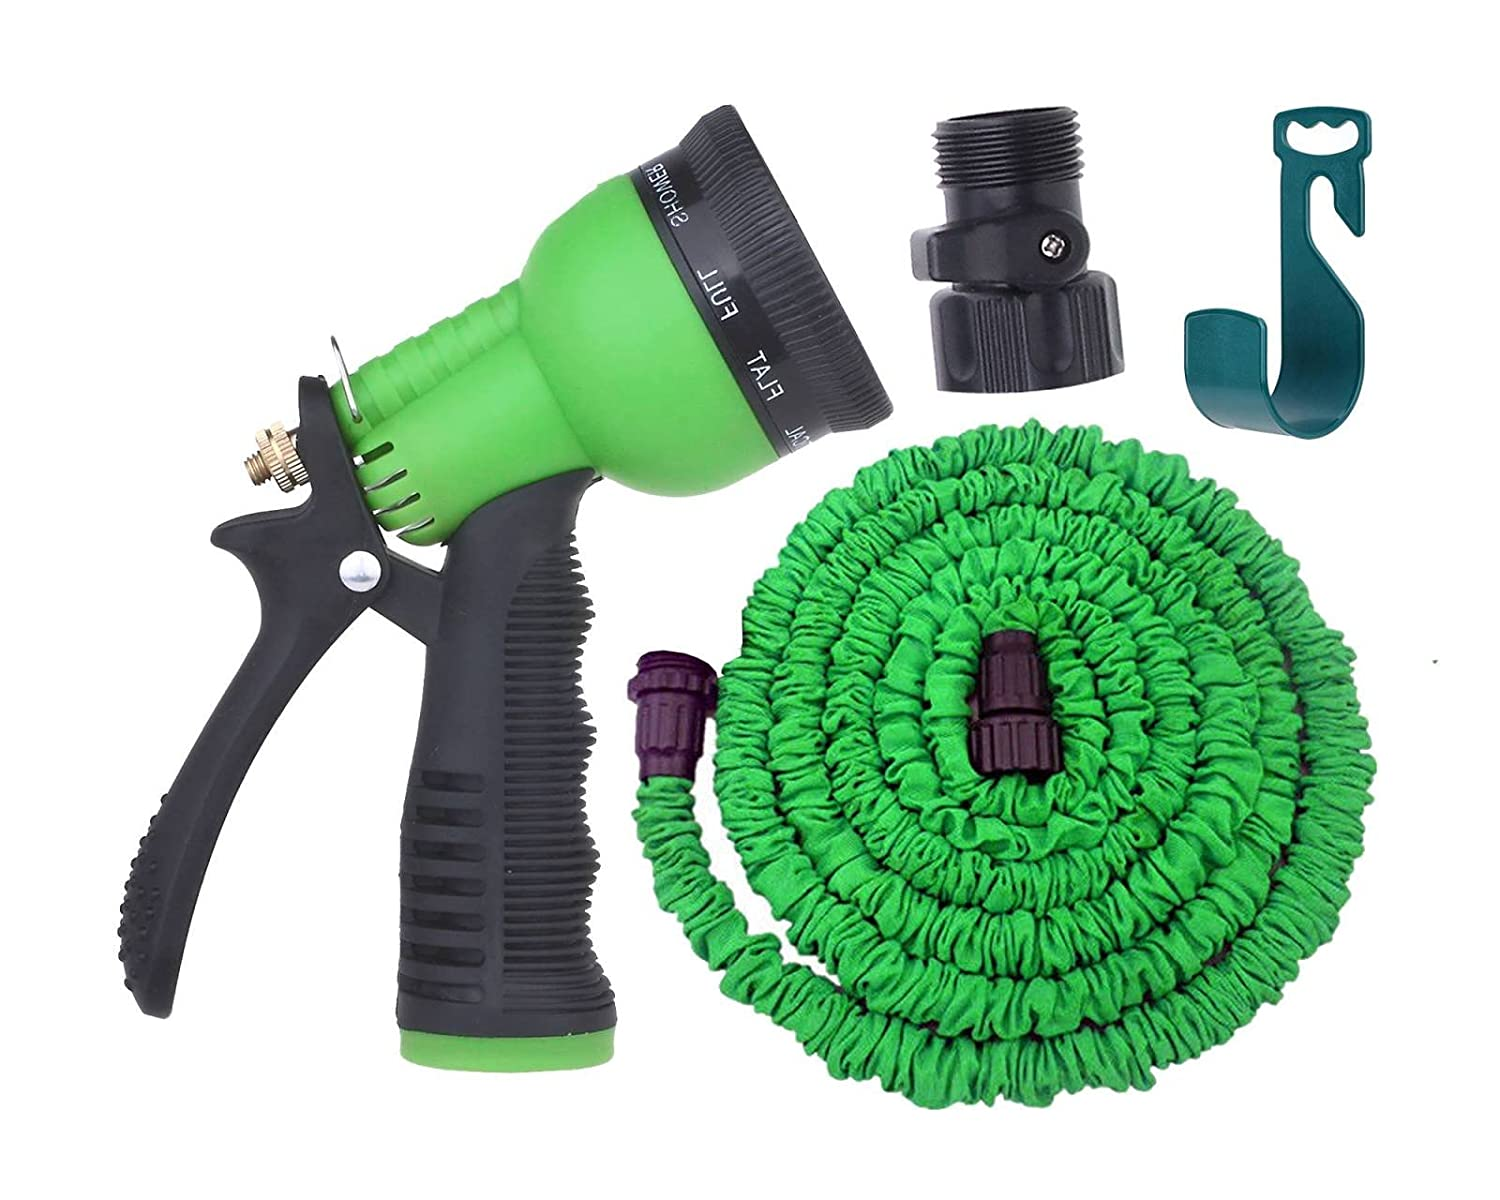 Amazoncom Expandable Garden Hose By Gardeniar 50ft Green